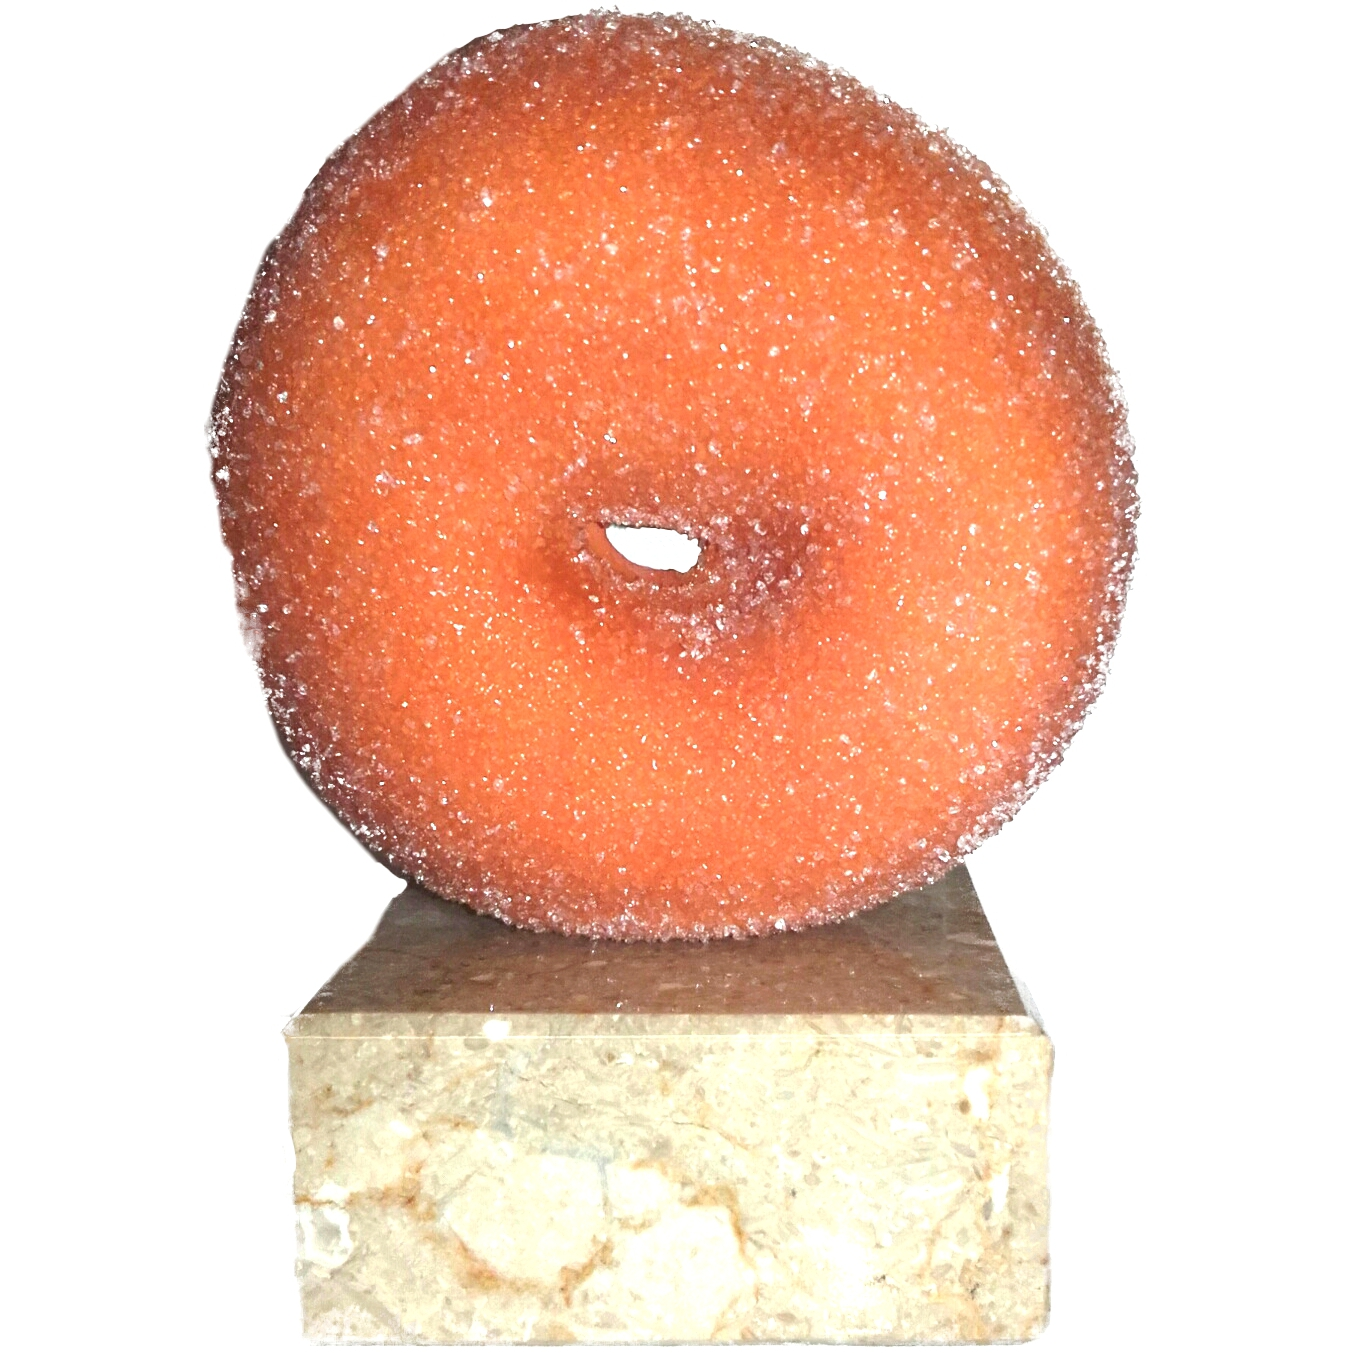 The Doughnut Trophy 11cms tall